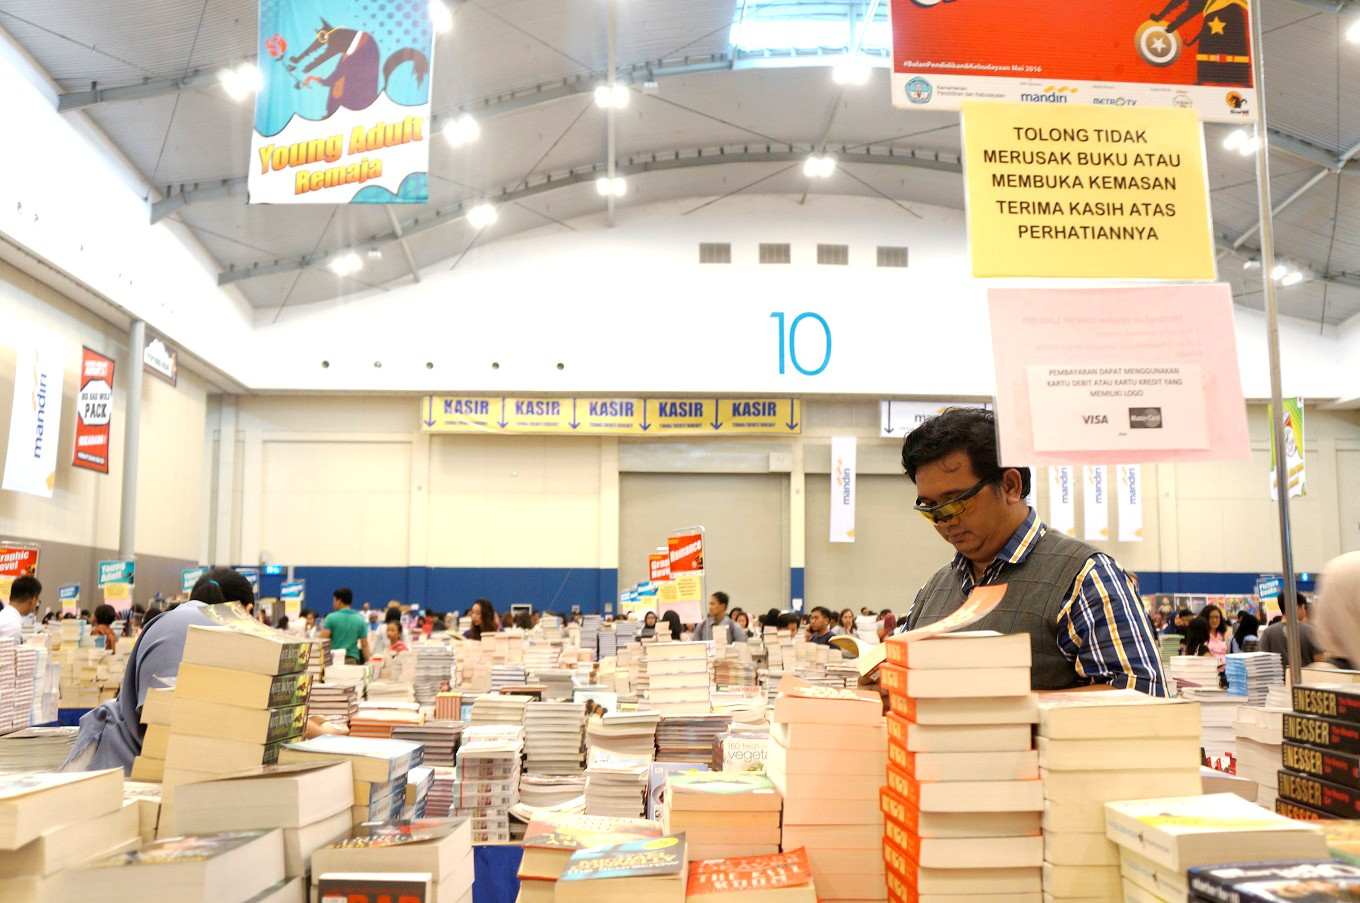 5.5 million books on sale at Big Bad Wolf event